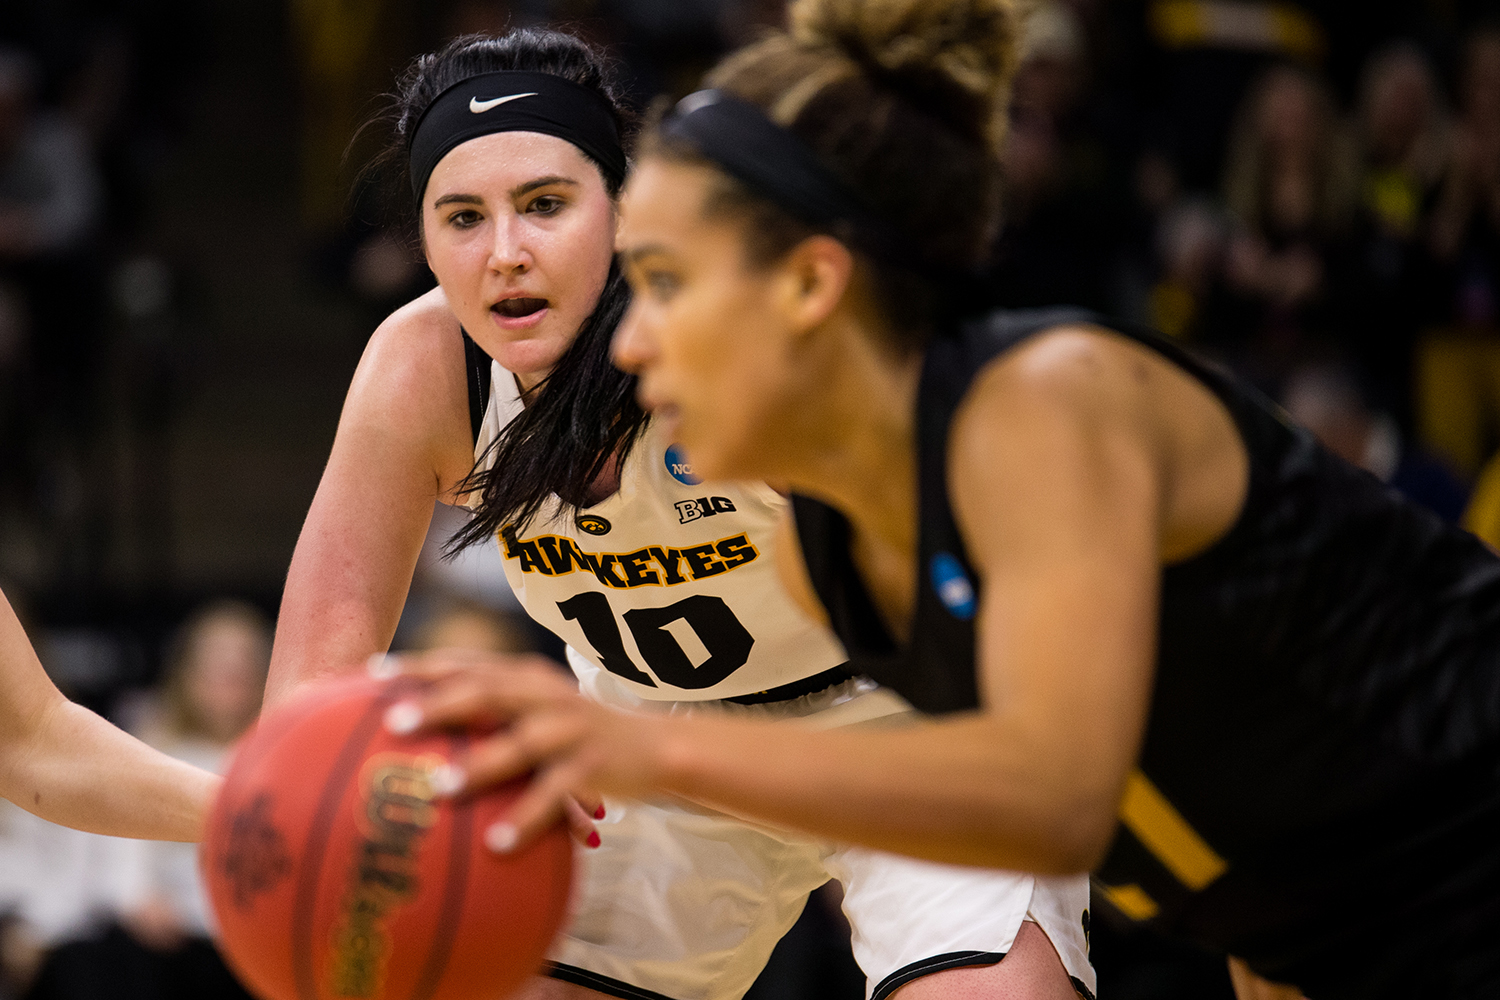 Iowa+center+Megan+Gustafson+%2810%29+looks+at+the+ball+during+the+Iowa%2FMissouri+NCAA+Tournament+second+round+women%E2%80%99s+basketball+game+in+Carver-Hawkeye+Arena+in+Iowa+City%2C+Iowa+on+Sunday%2C+March+24%2C+2019.+The+Hawkeyes+defeated+the+Tigers+68-52.